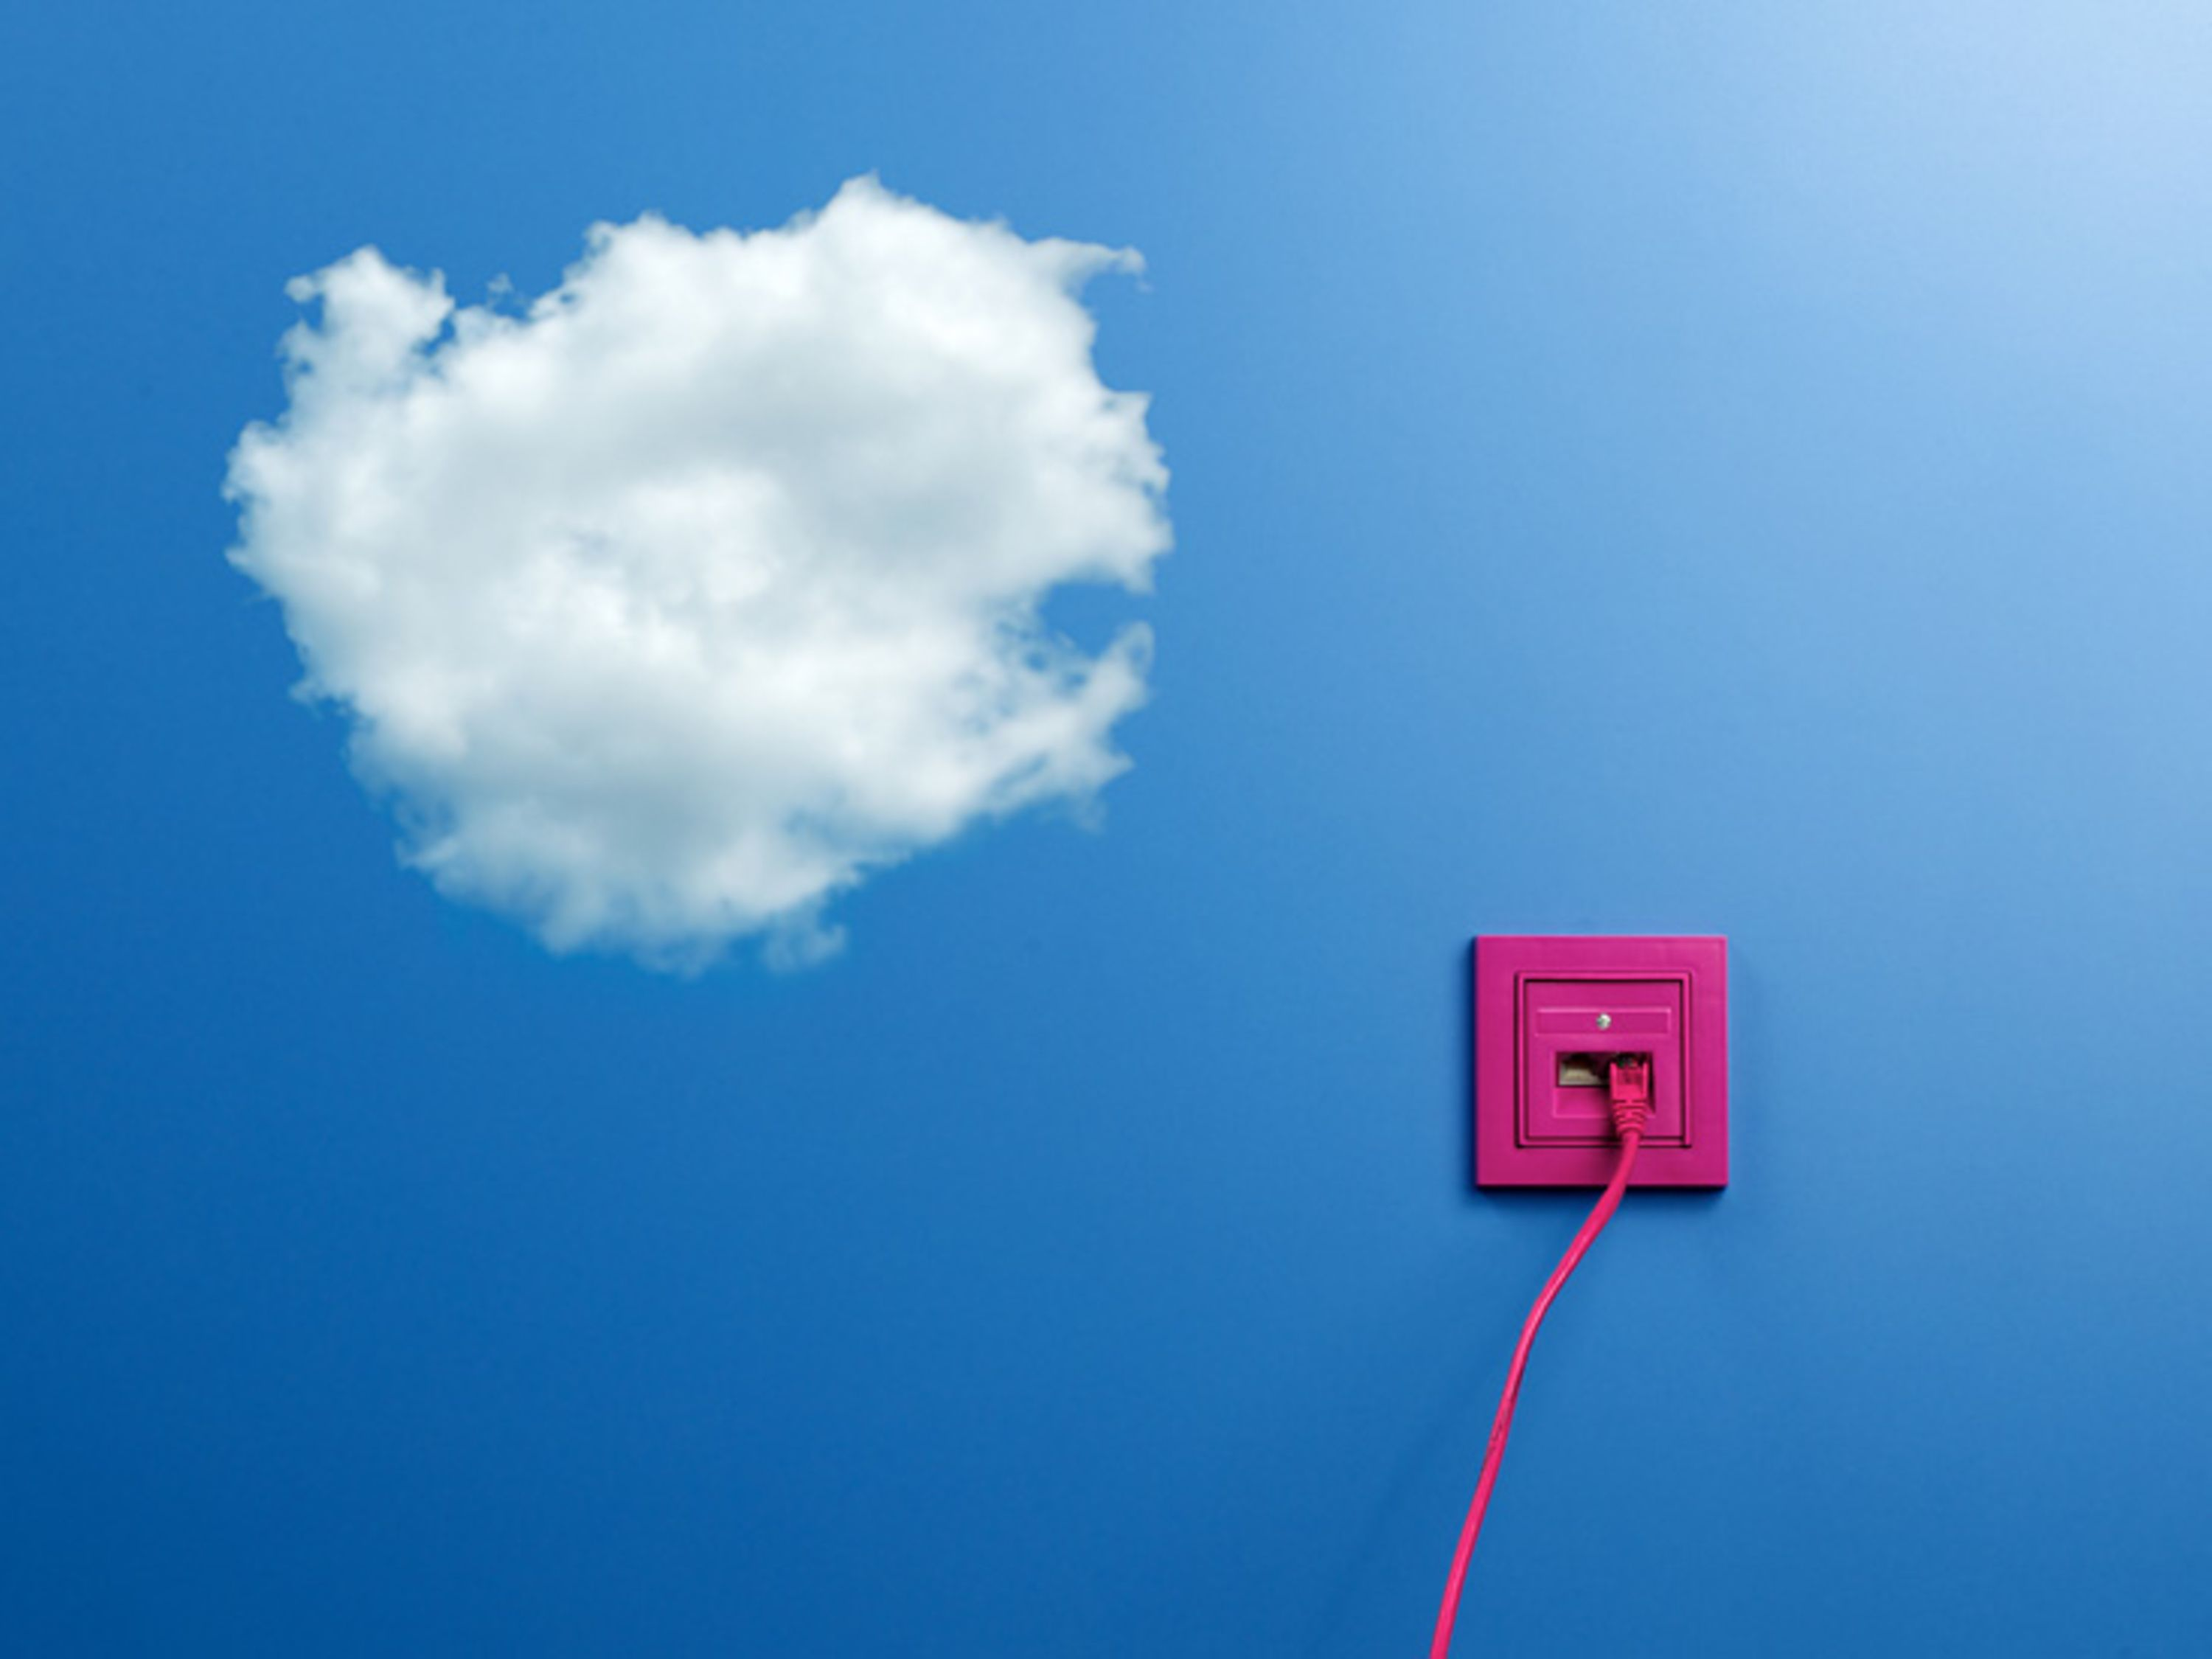 A pink outlet on a blue wall with clouds